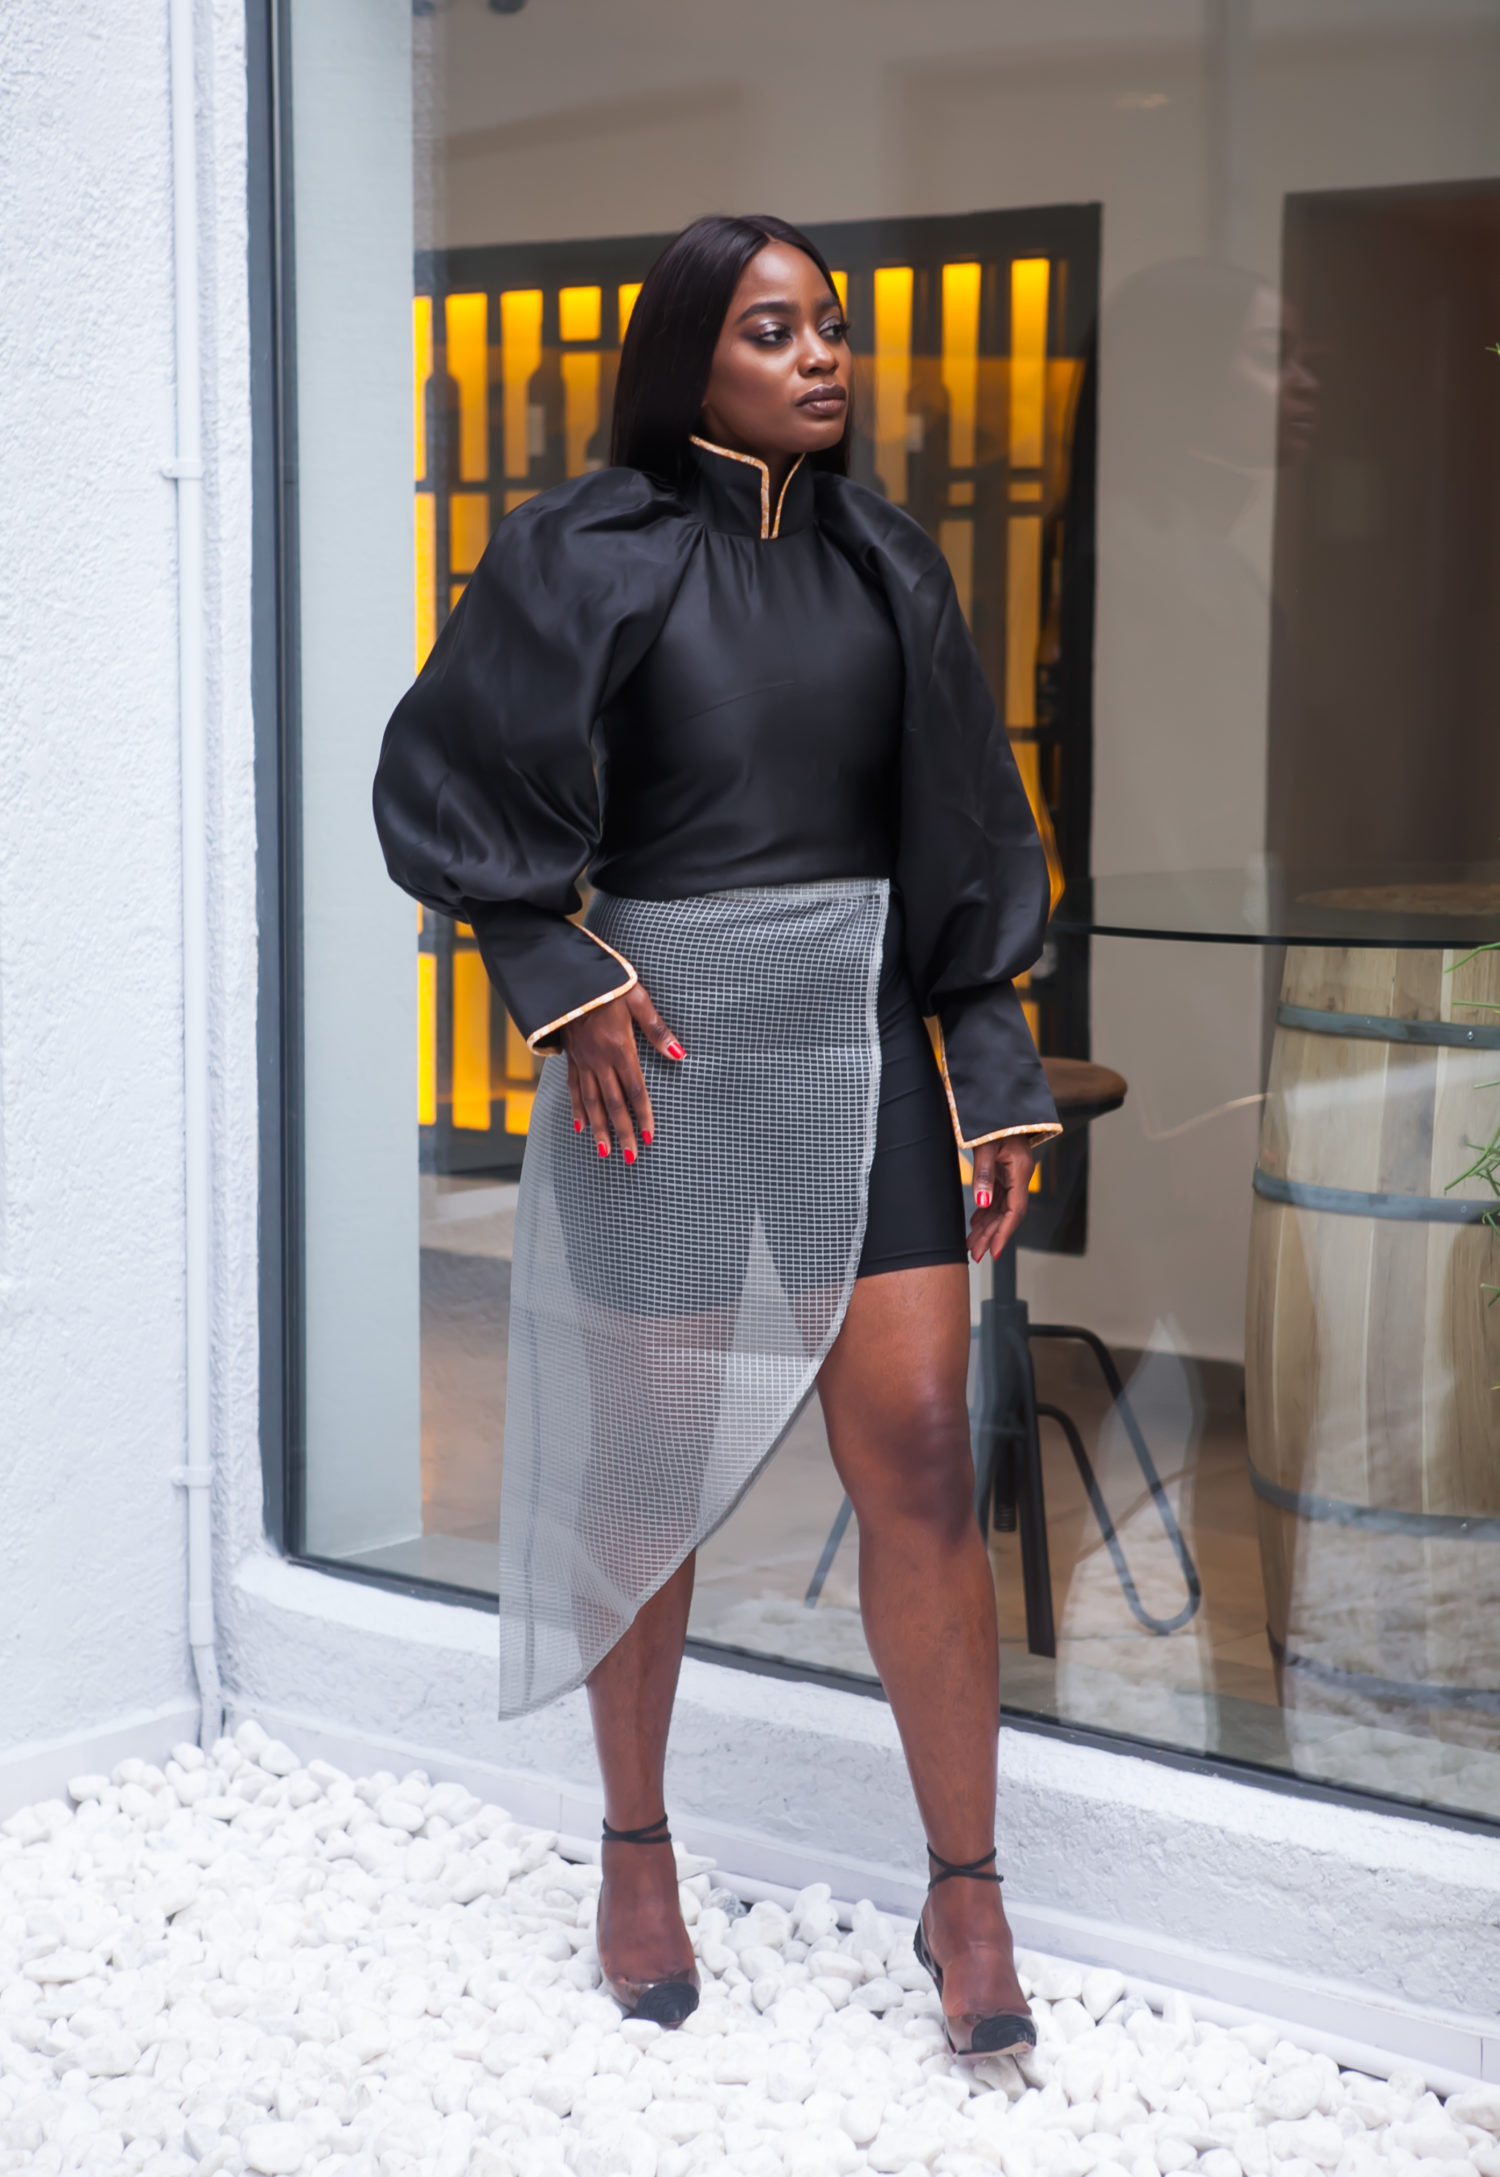 FAFA – The New Womenswear Brand All Cool Girls Will Actually Love!